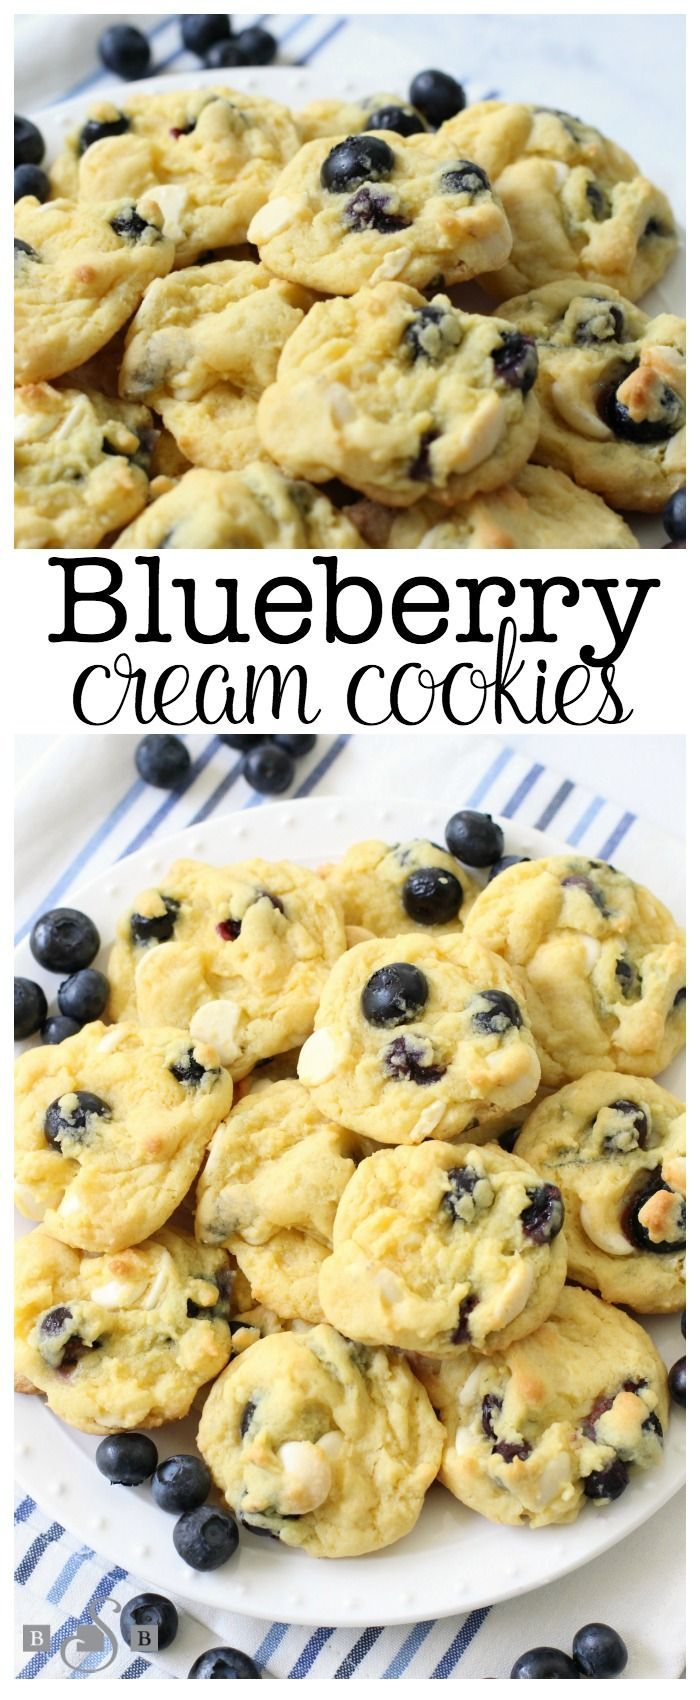 25+ best ideas about Blueberry cookies on Pinterest ...